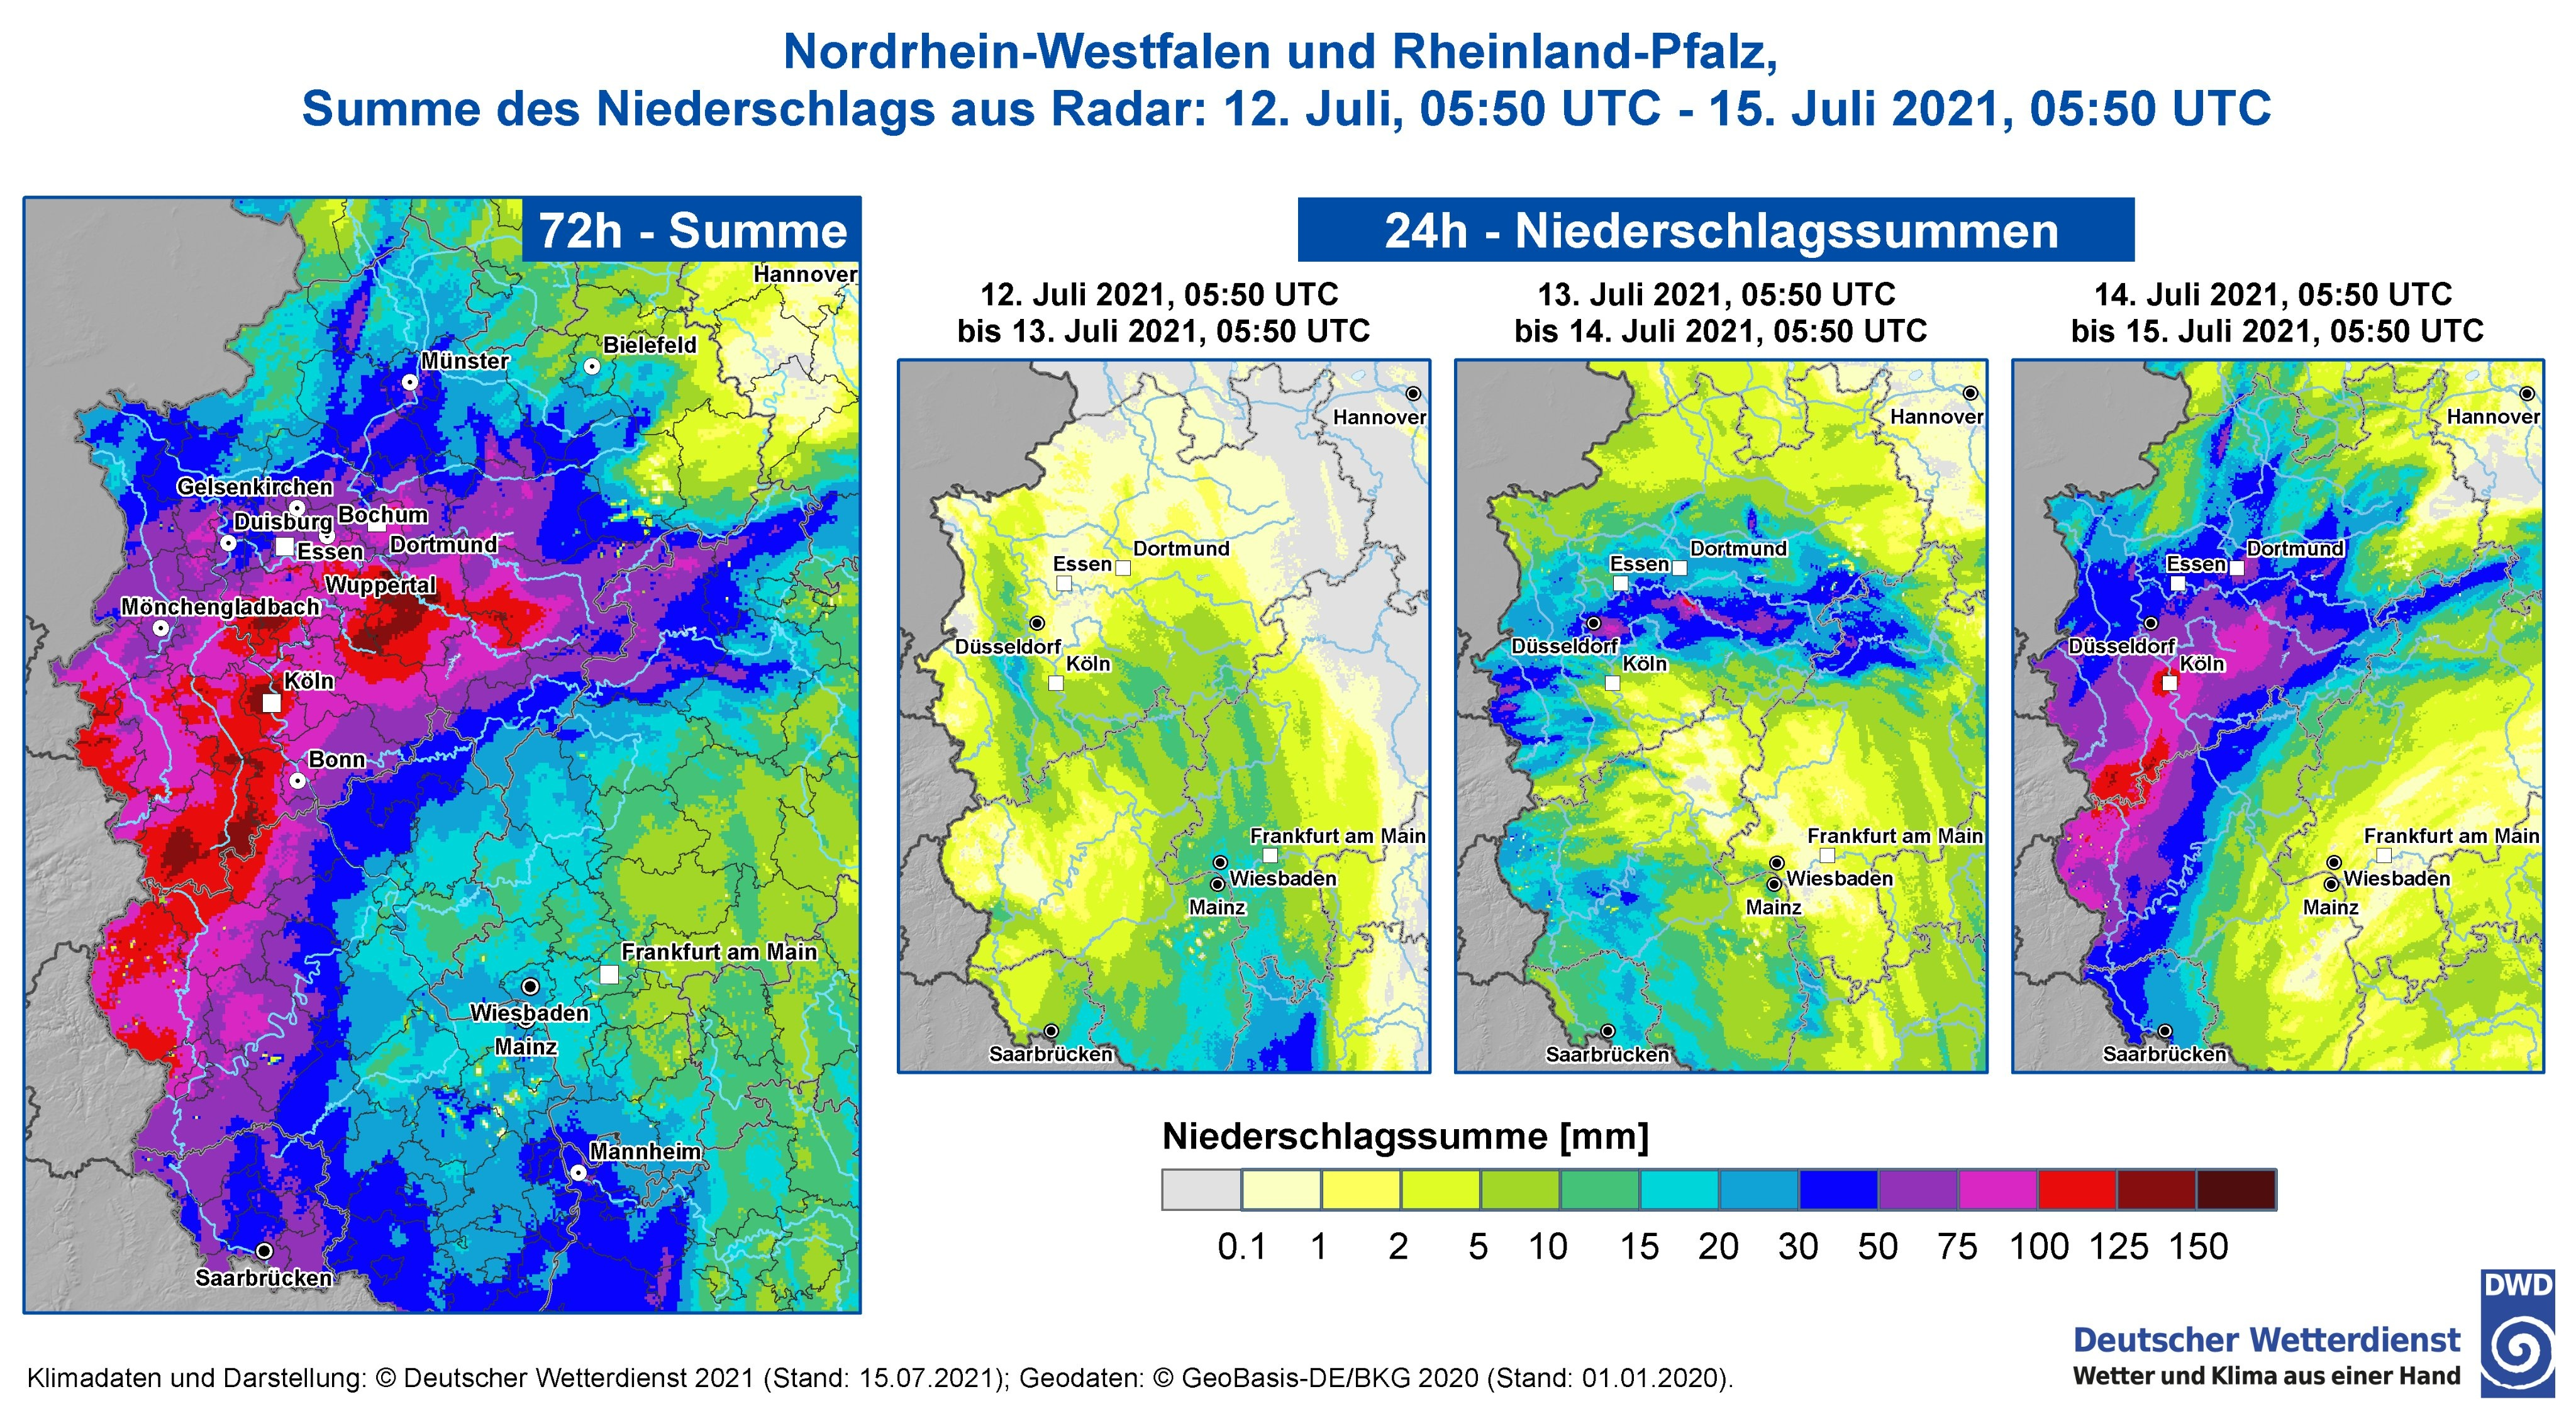 Precipitation accumulations for Germany flooded areas